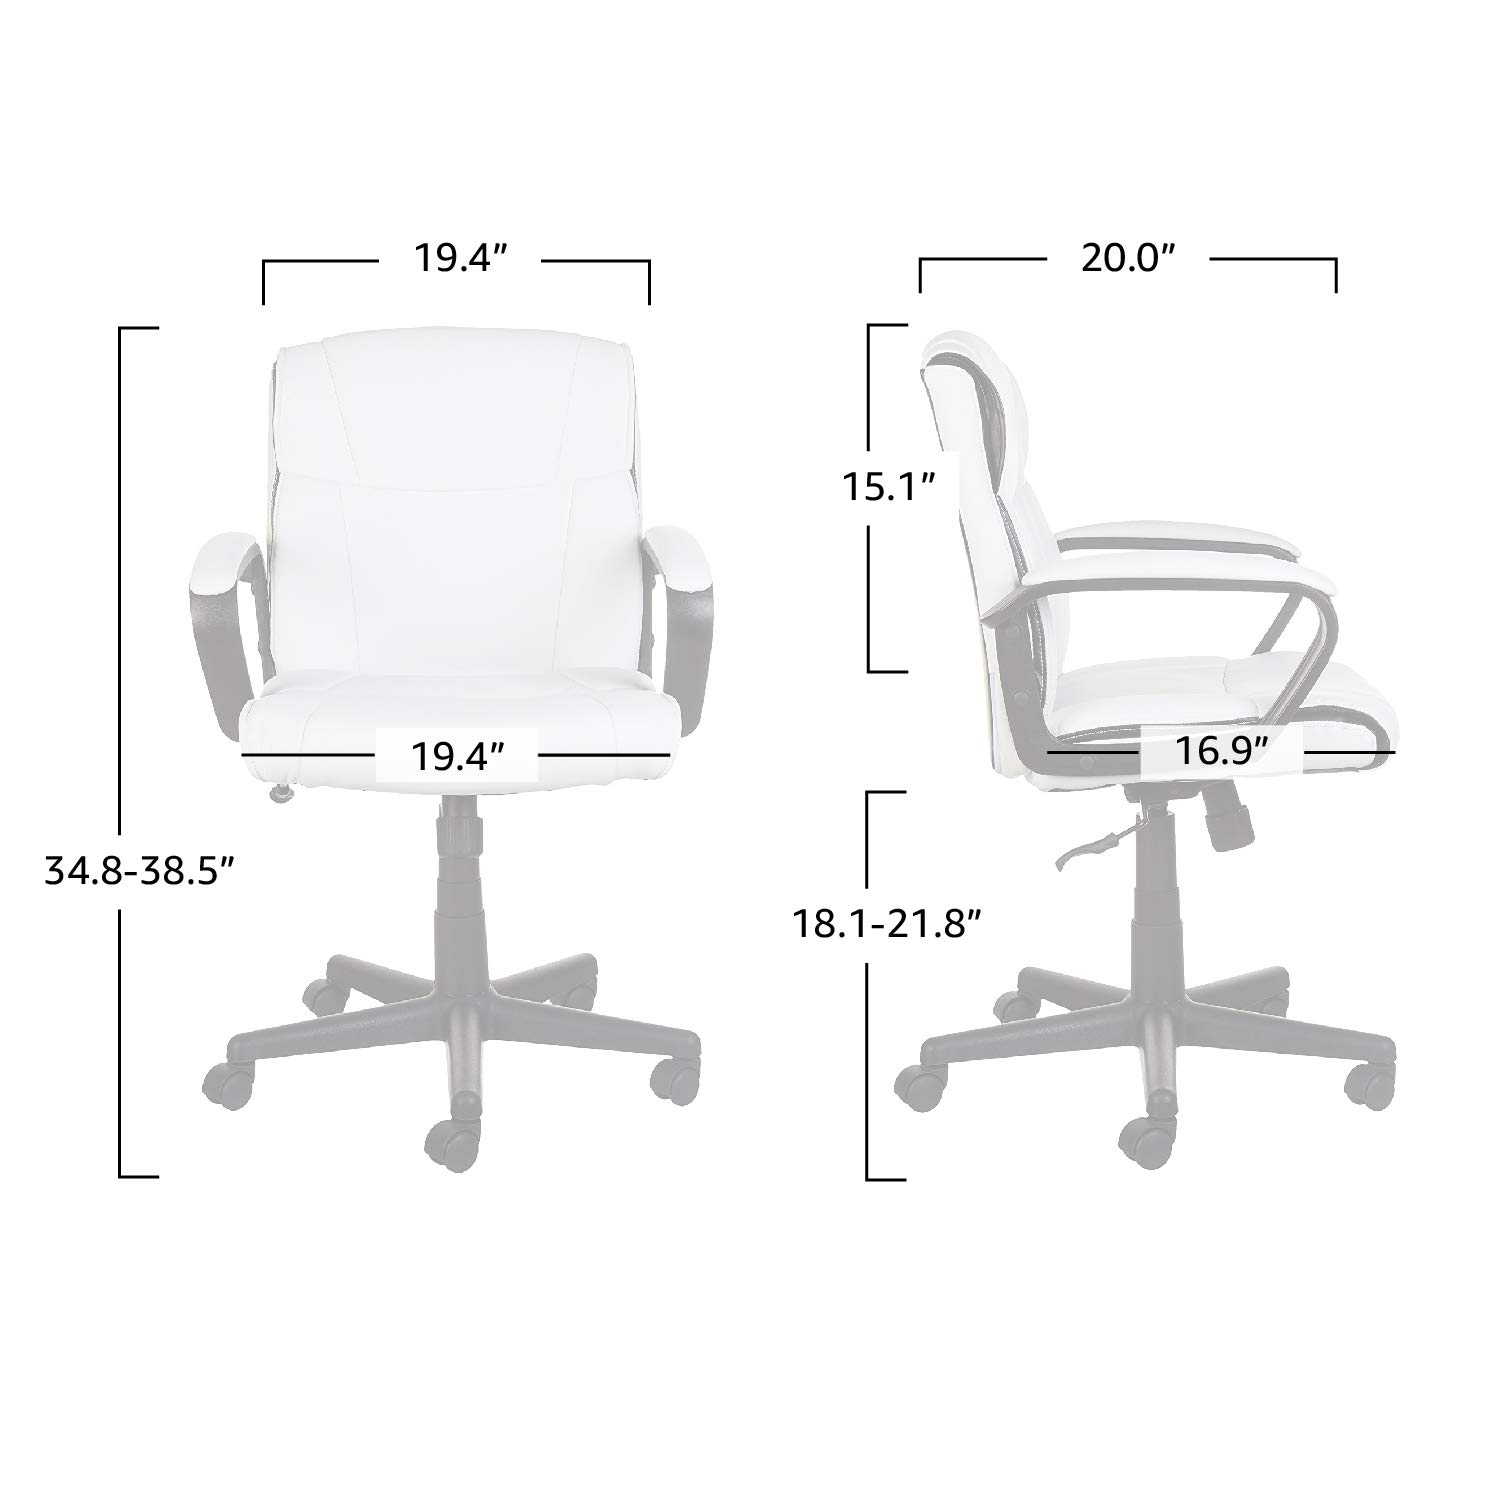 AmazonBasics Classic Leather-Padded Mid-Back Office Computer Desk Chair with Armrest - White by AmazonBasics (Image #4)